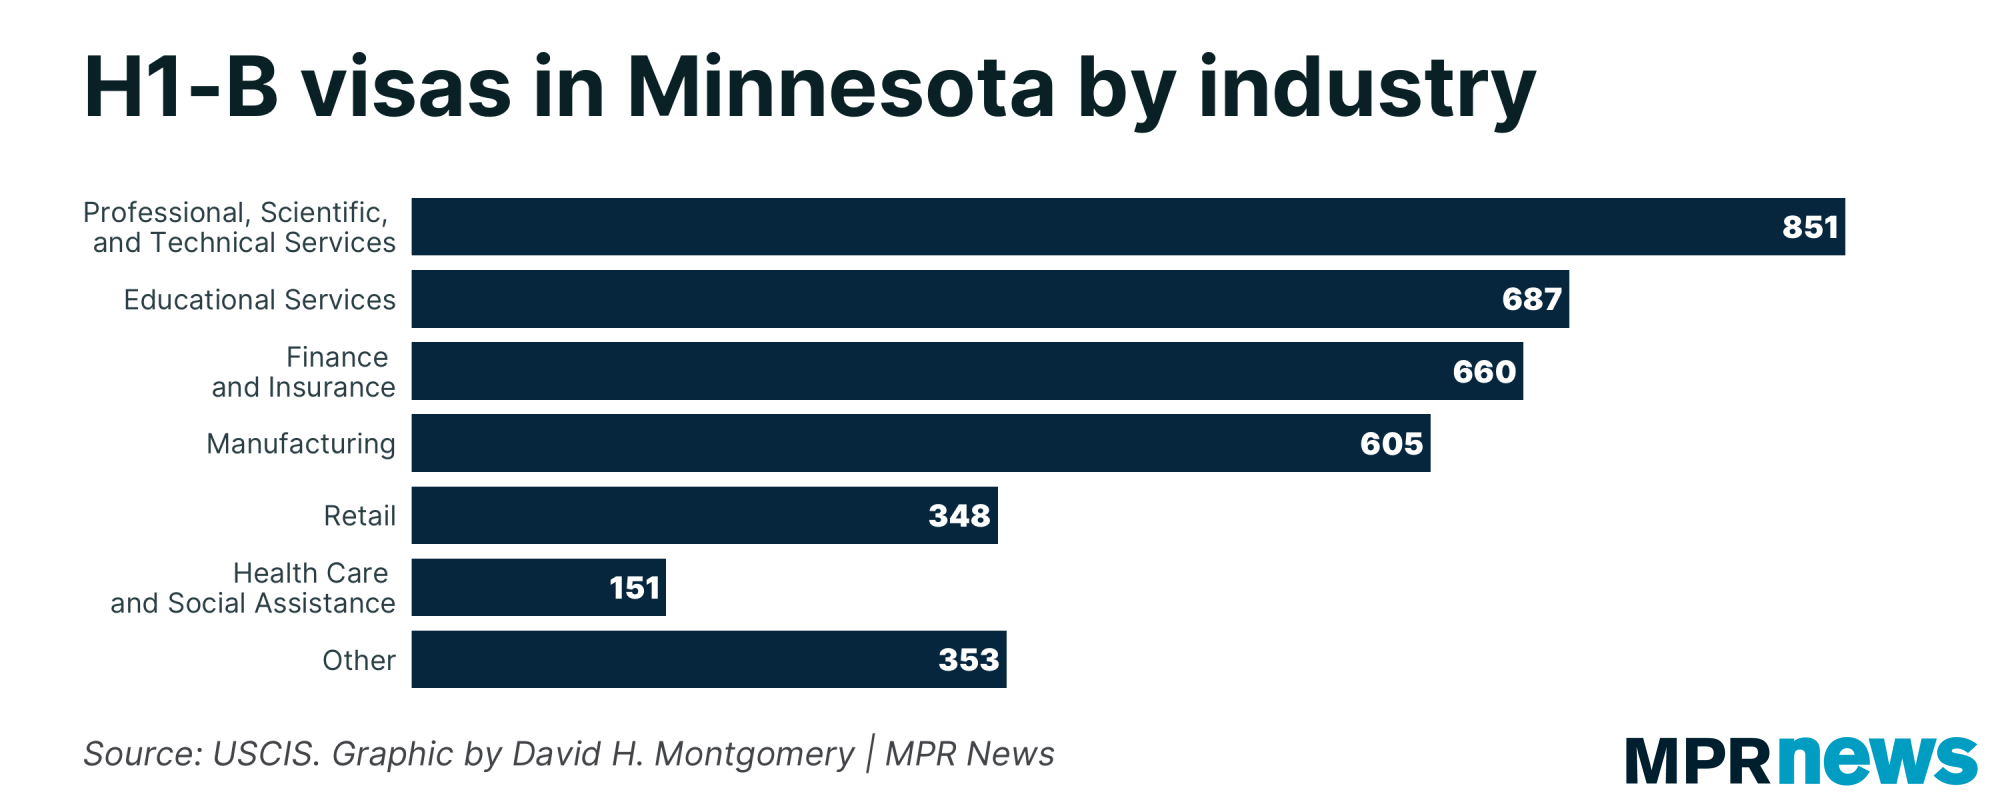 H1-B visas in Minnesota by industry.